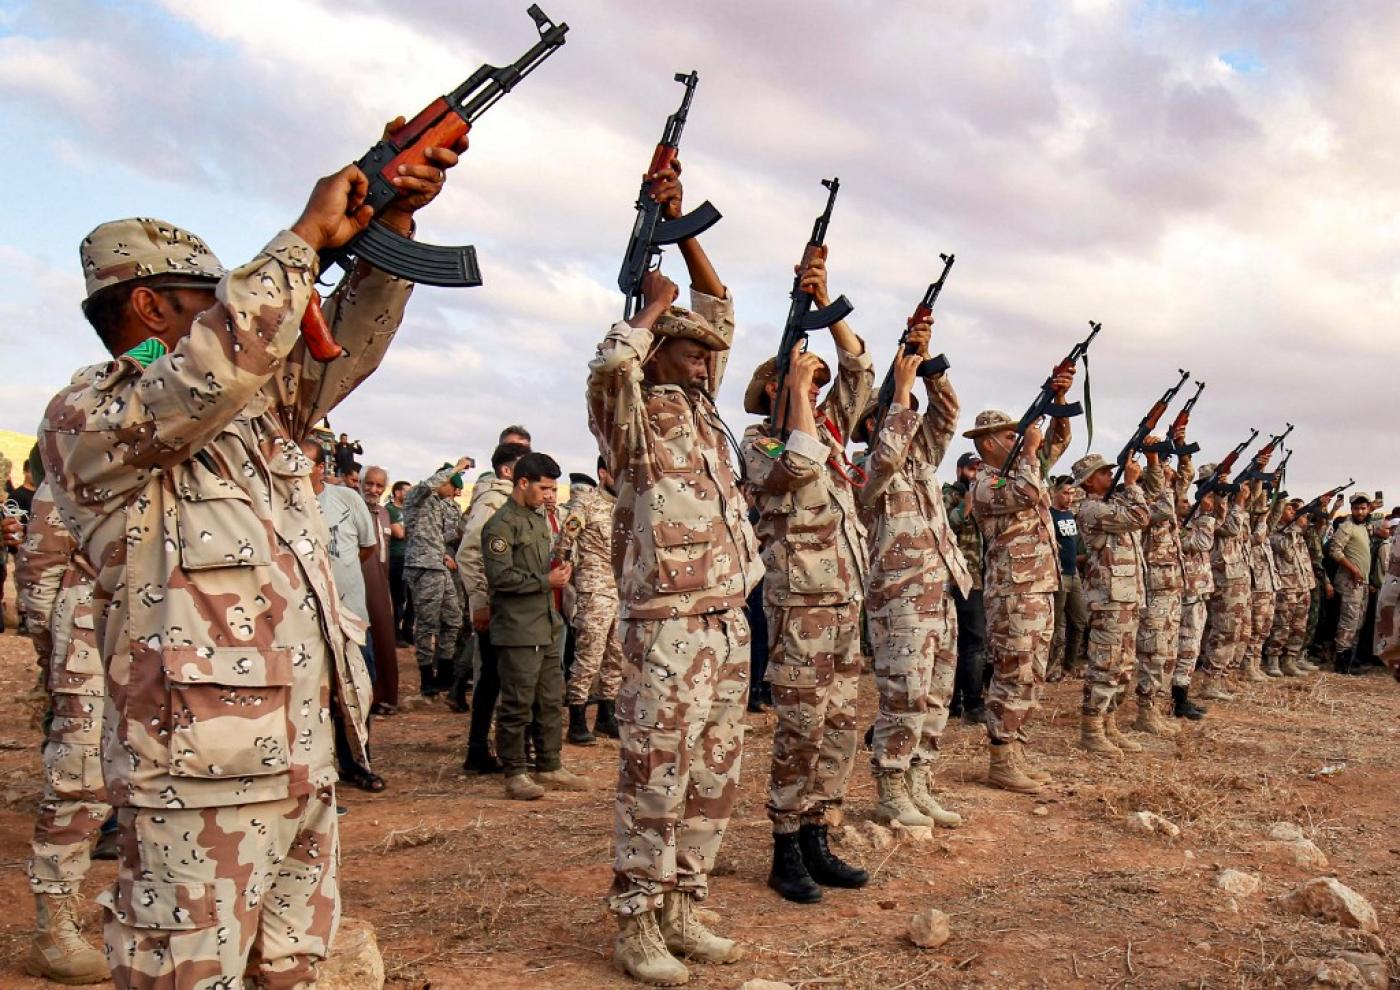 UN chief to foreign forces: 'Leave the Libyans alone'